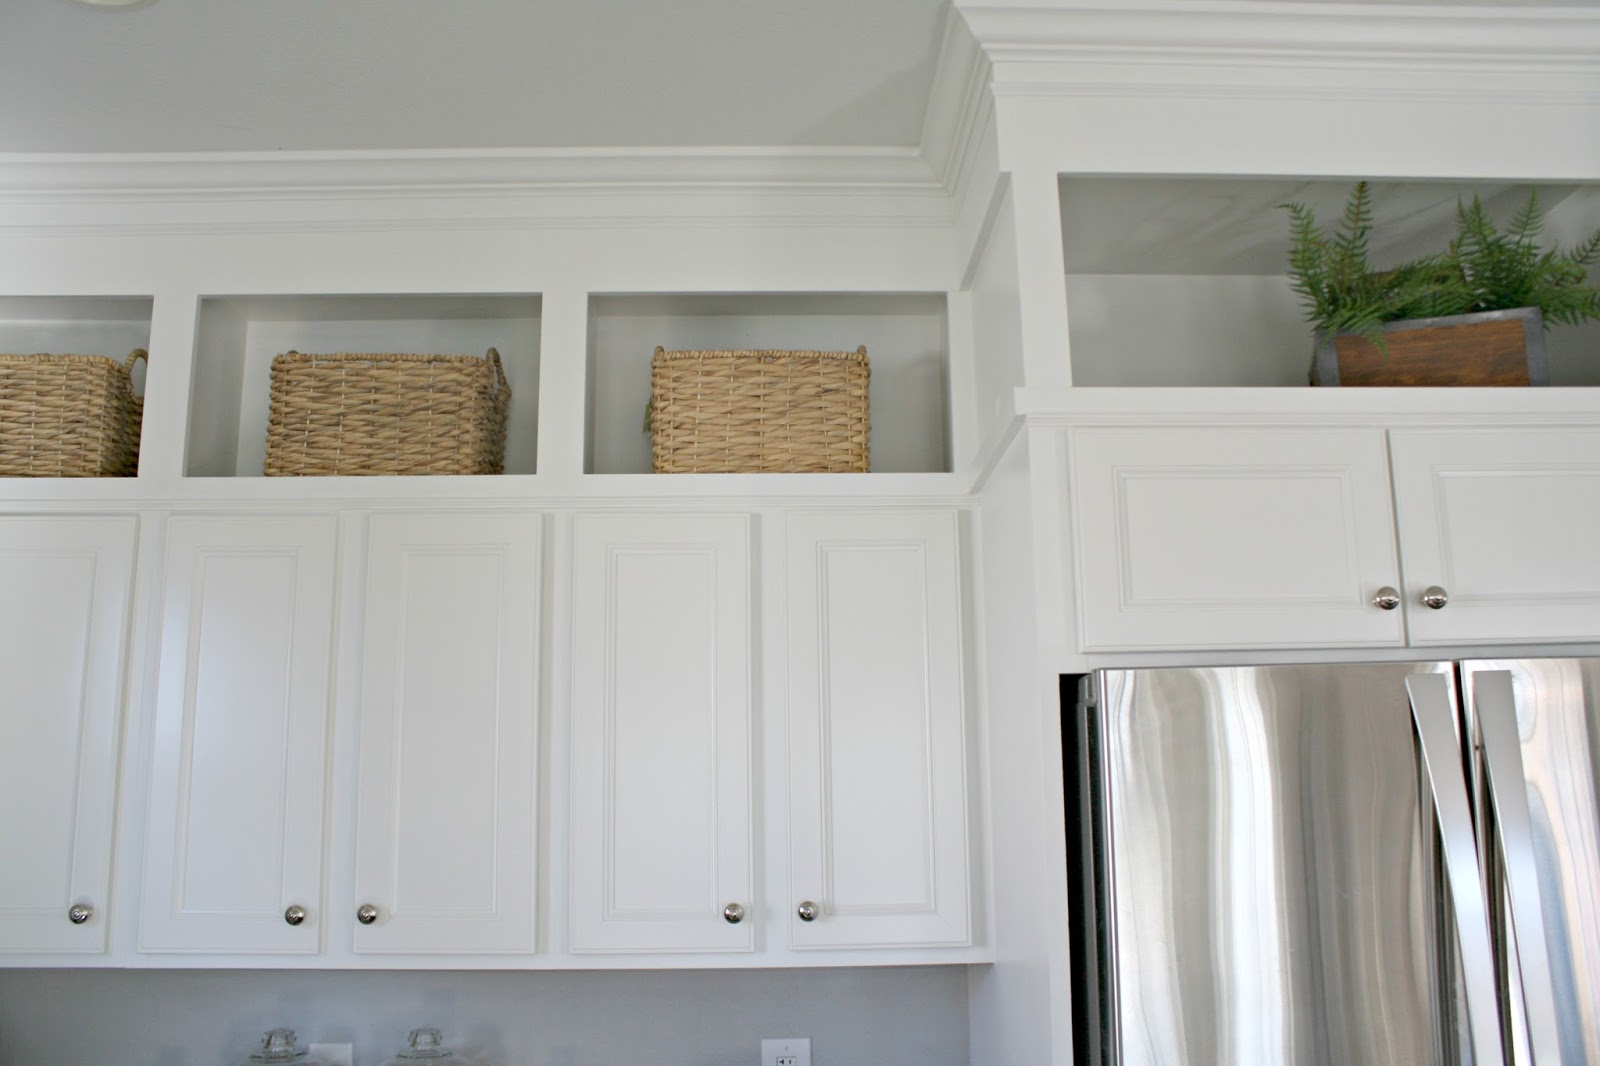 The Epic How to Paint Your Kitchen Cabinets Tutorial! from Thrifty ...